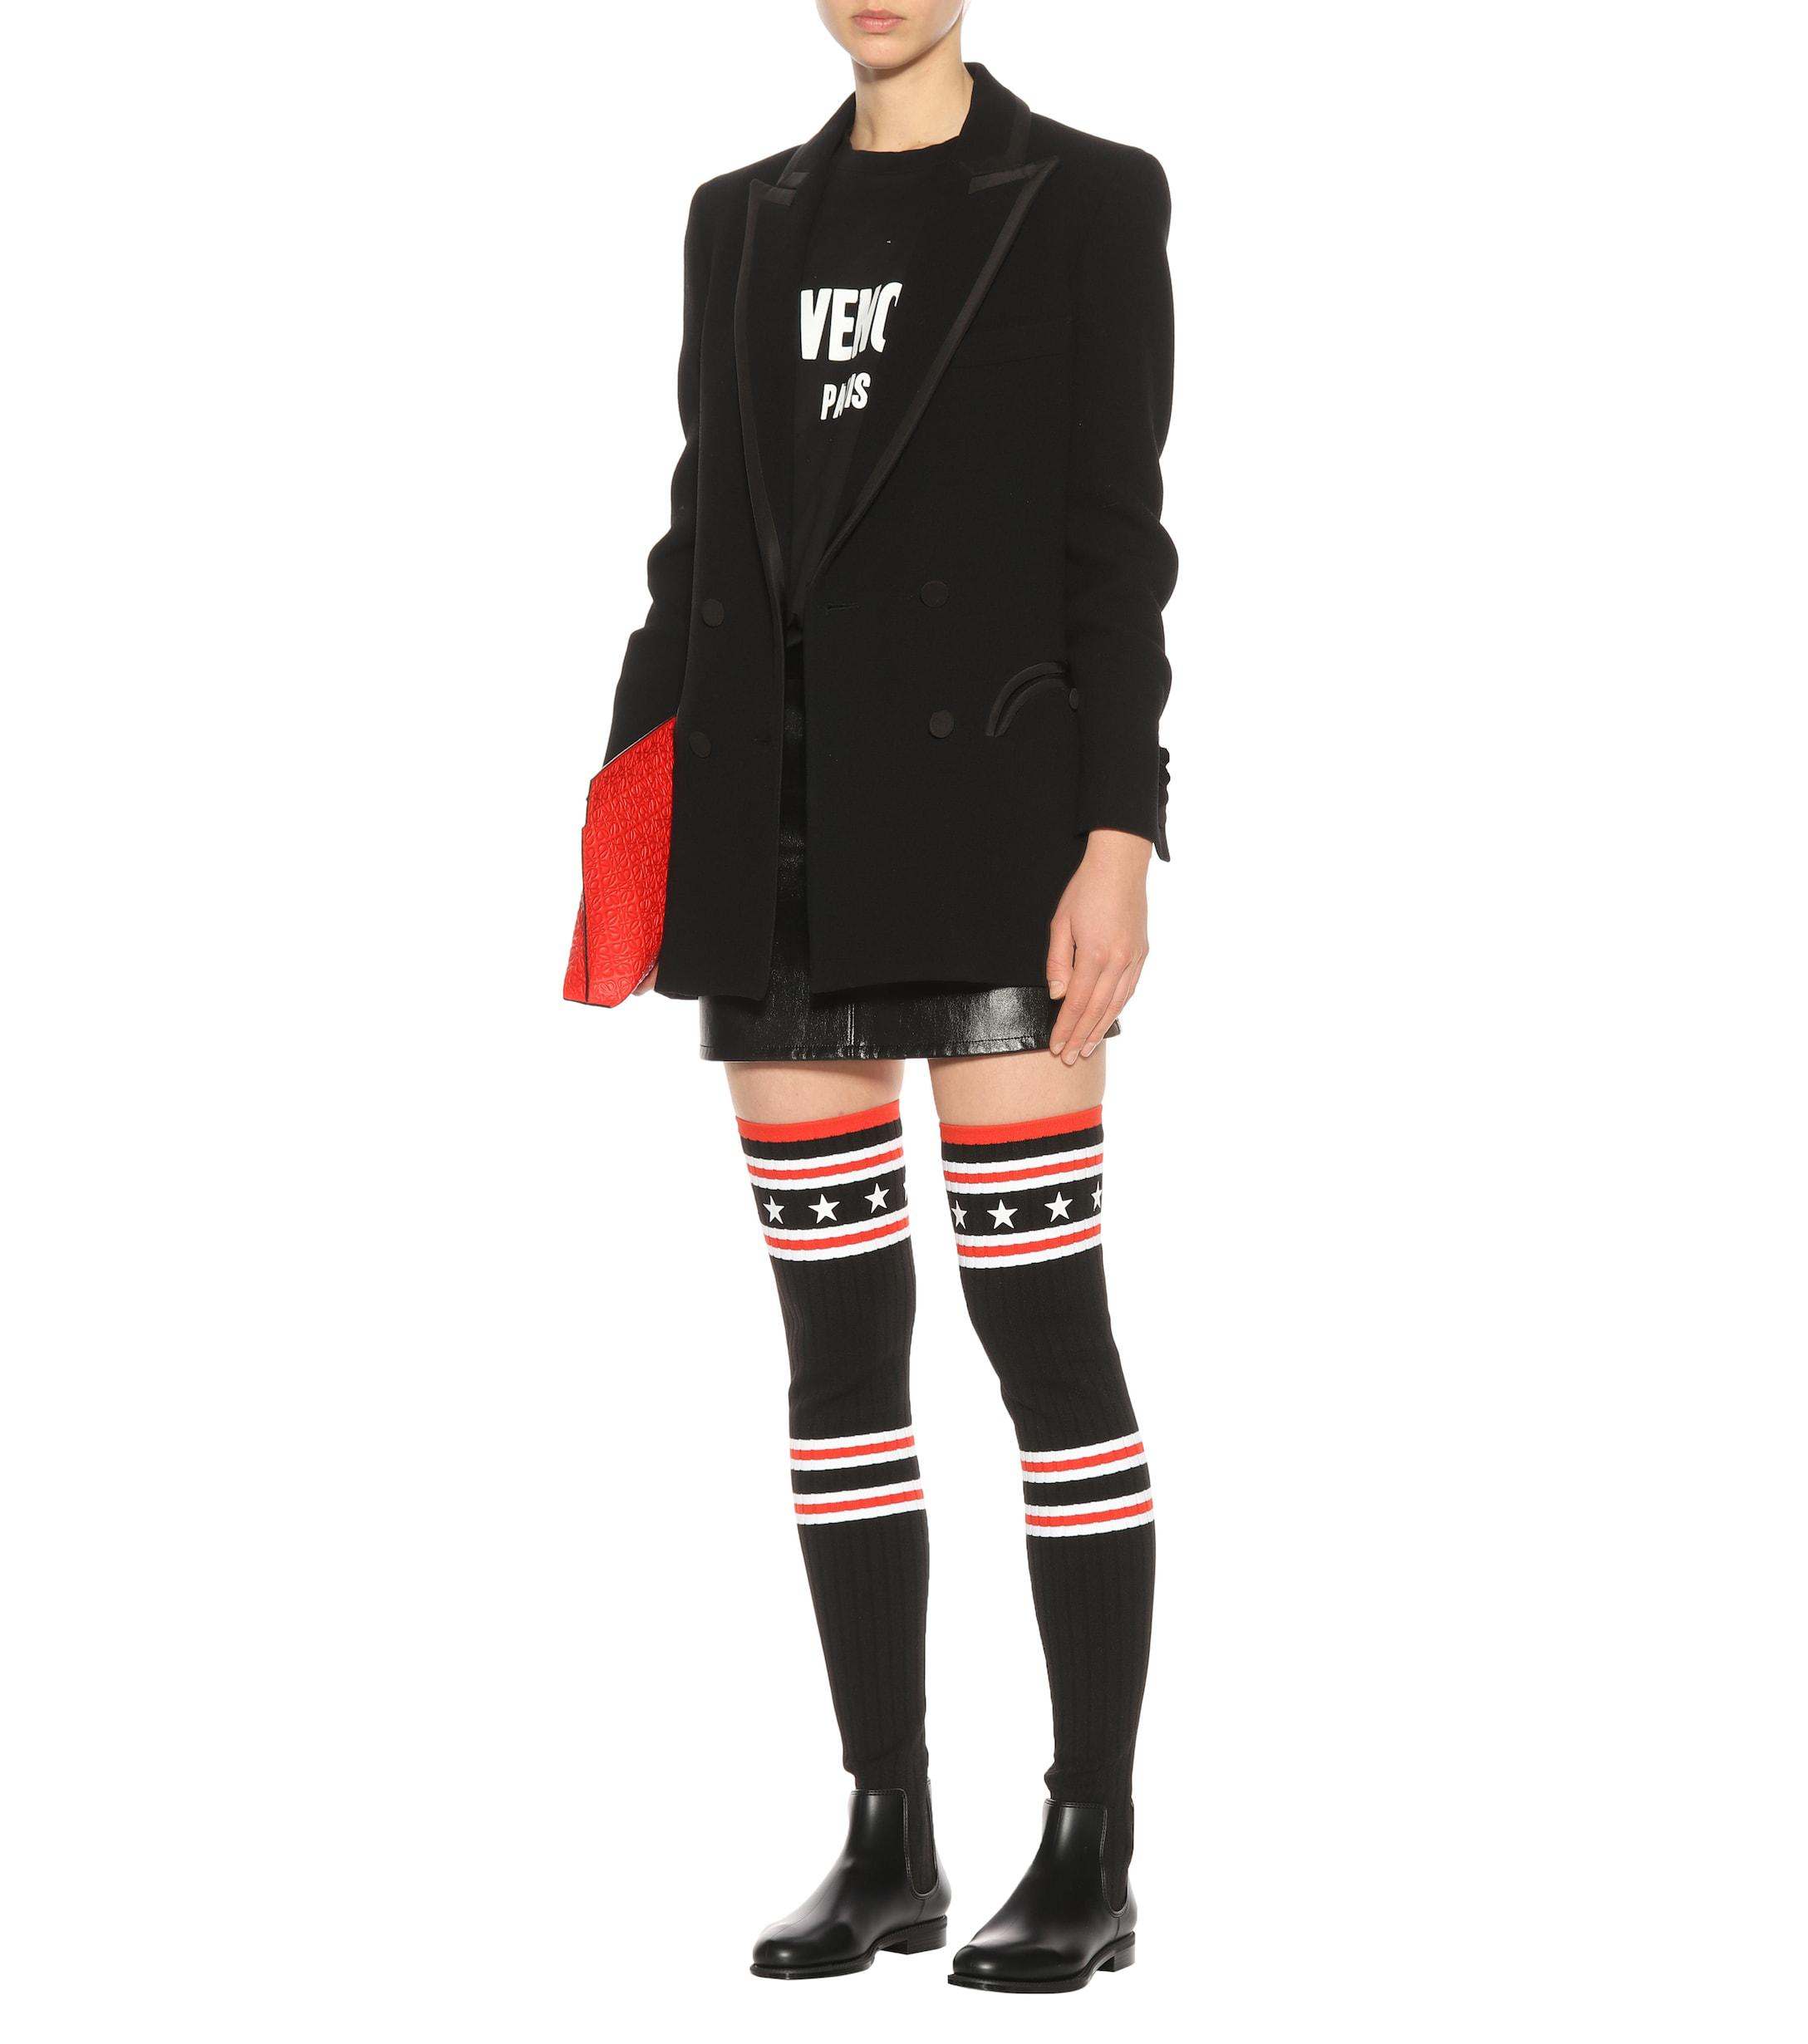 4badc3fda Givenchy Storm Over-the-knee Sock Boots in Black - Save 58% - Lyst